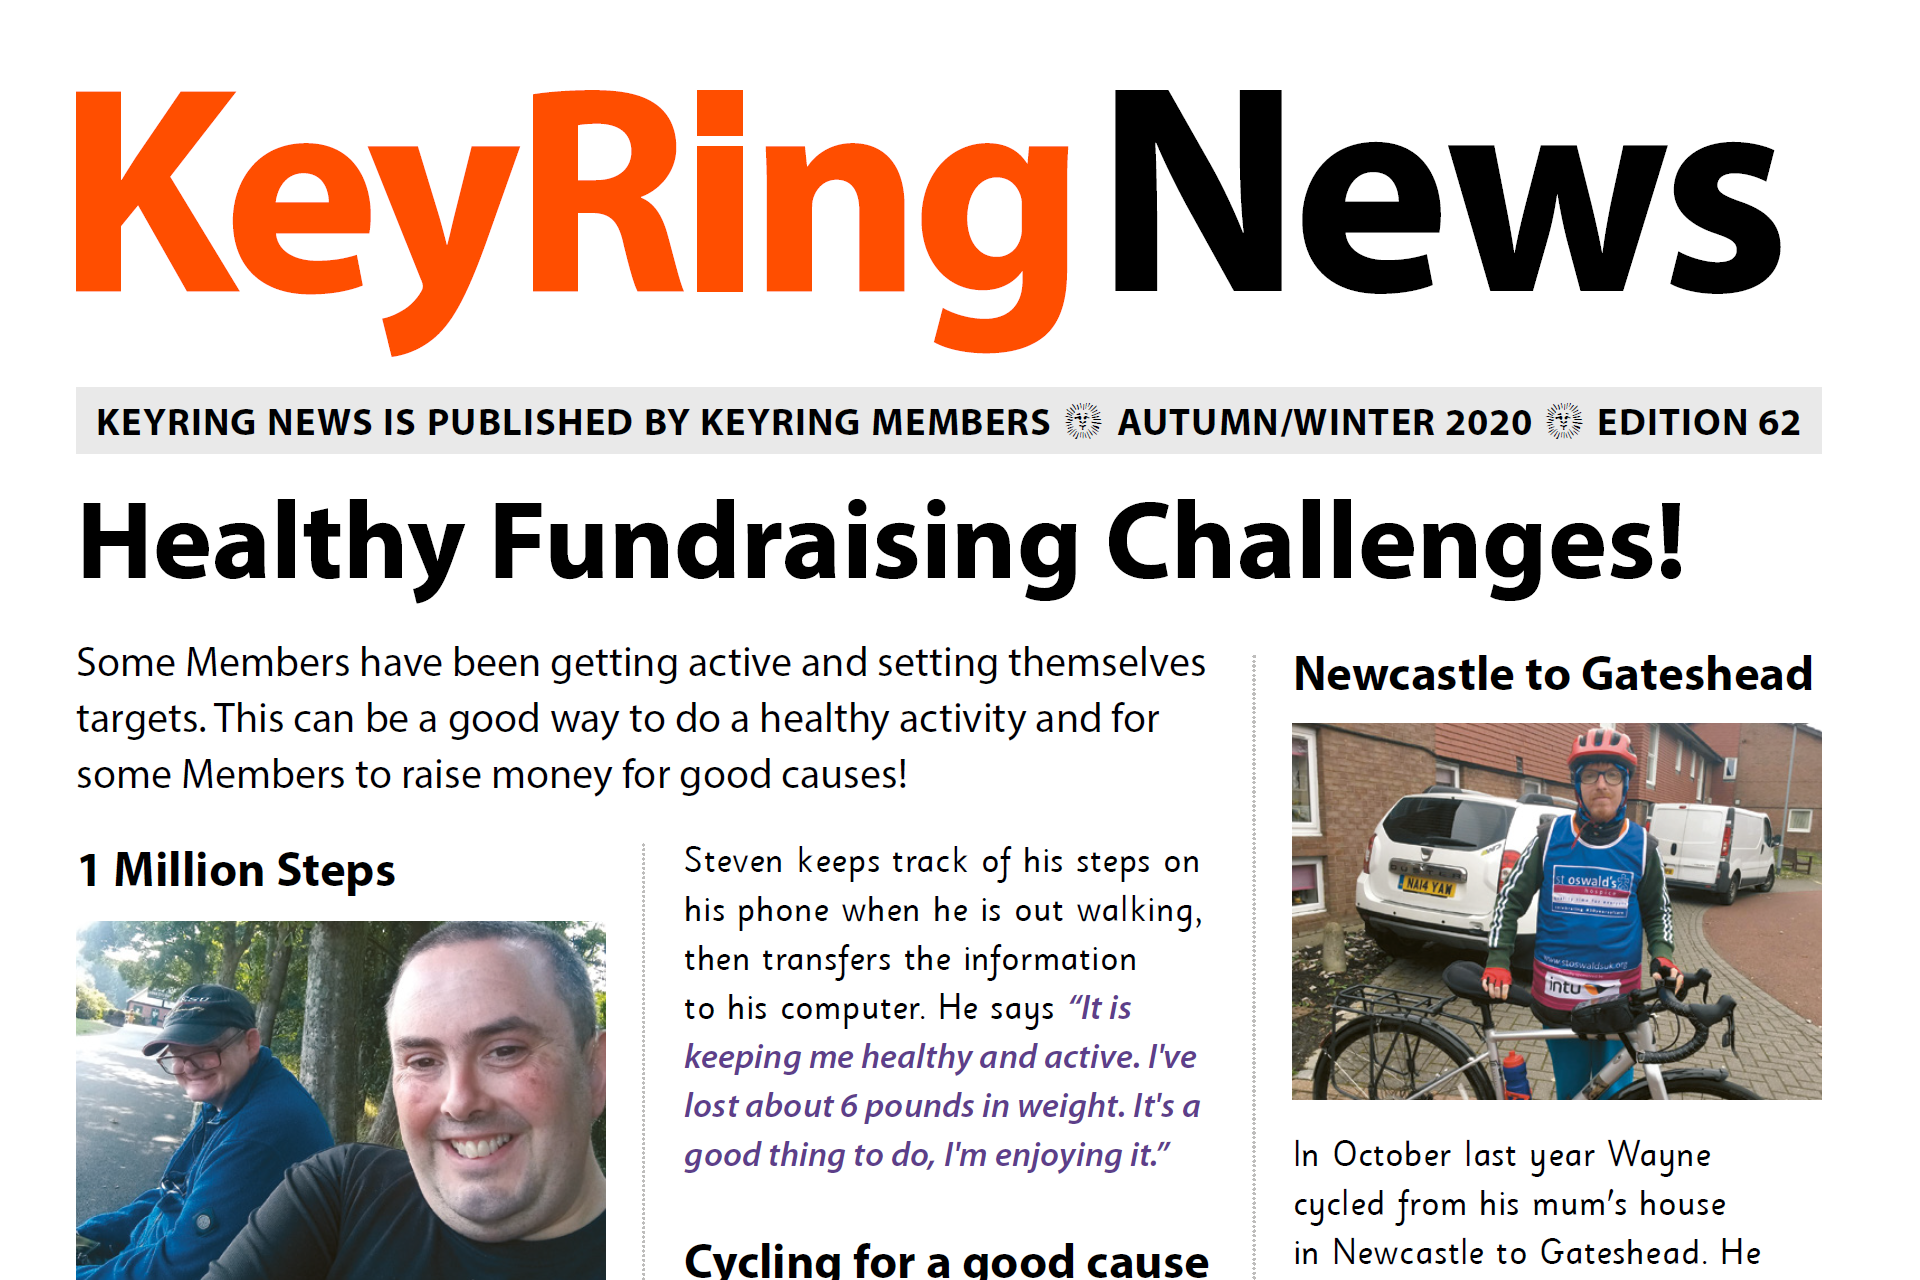 KeyRing News: Health and Wellbeing